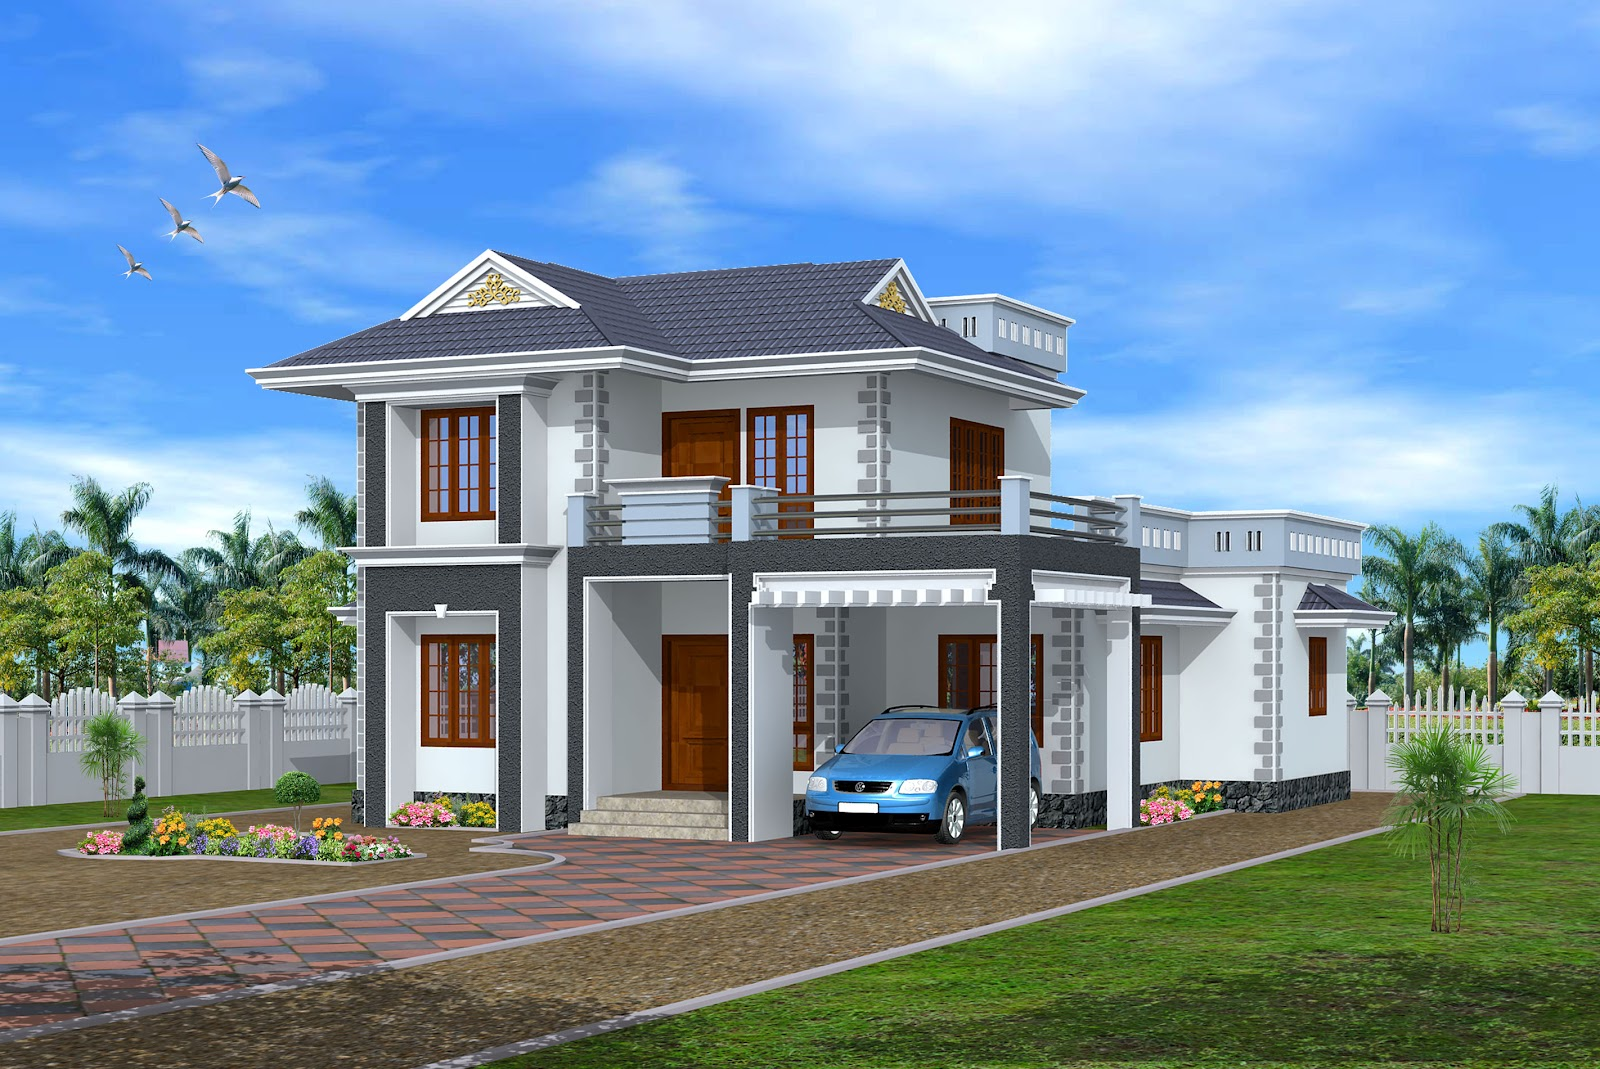 New home designs latest modern homes exterior designs views for New construction design ideas